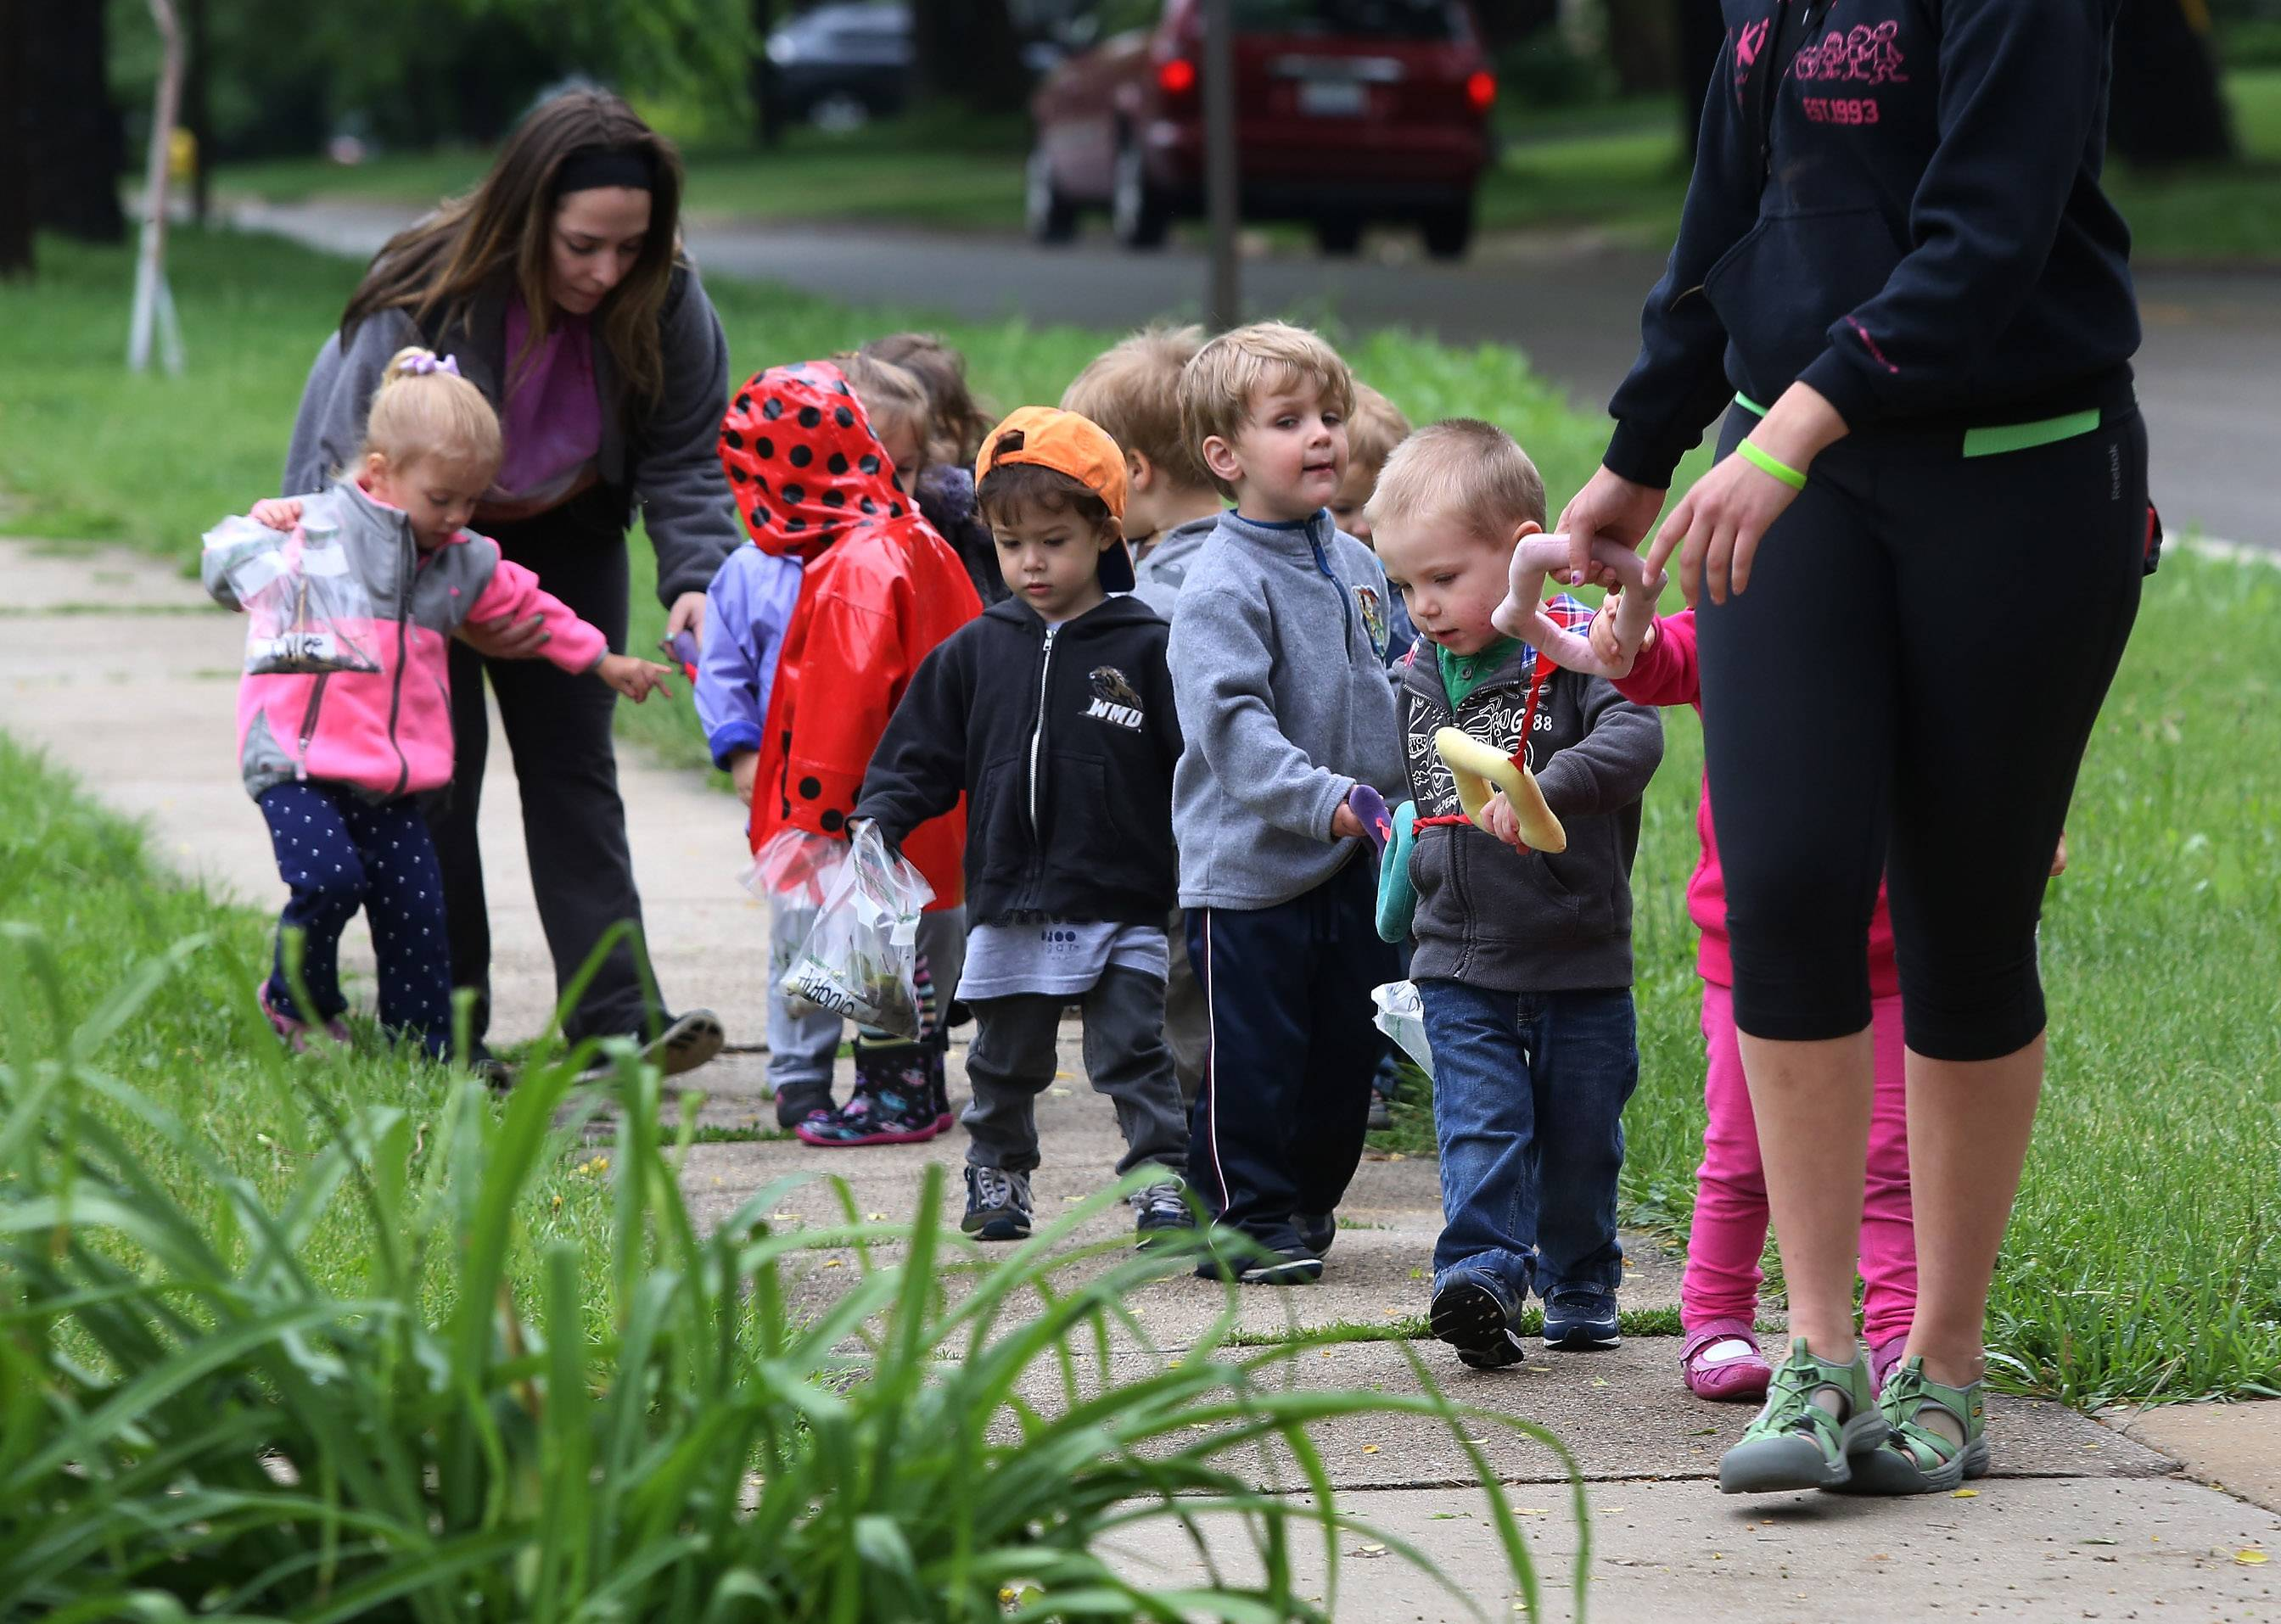 On a nature walk through downtown Grayslake, two-year-old children collect bugs, sticks and rocks as they make their way back to the 4Kids Childcare Learning Center Wednesday. The preschool children walked along rain soaked sidewalks as they scrambled to find objects for their class sensory table.